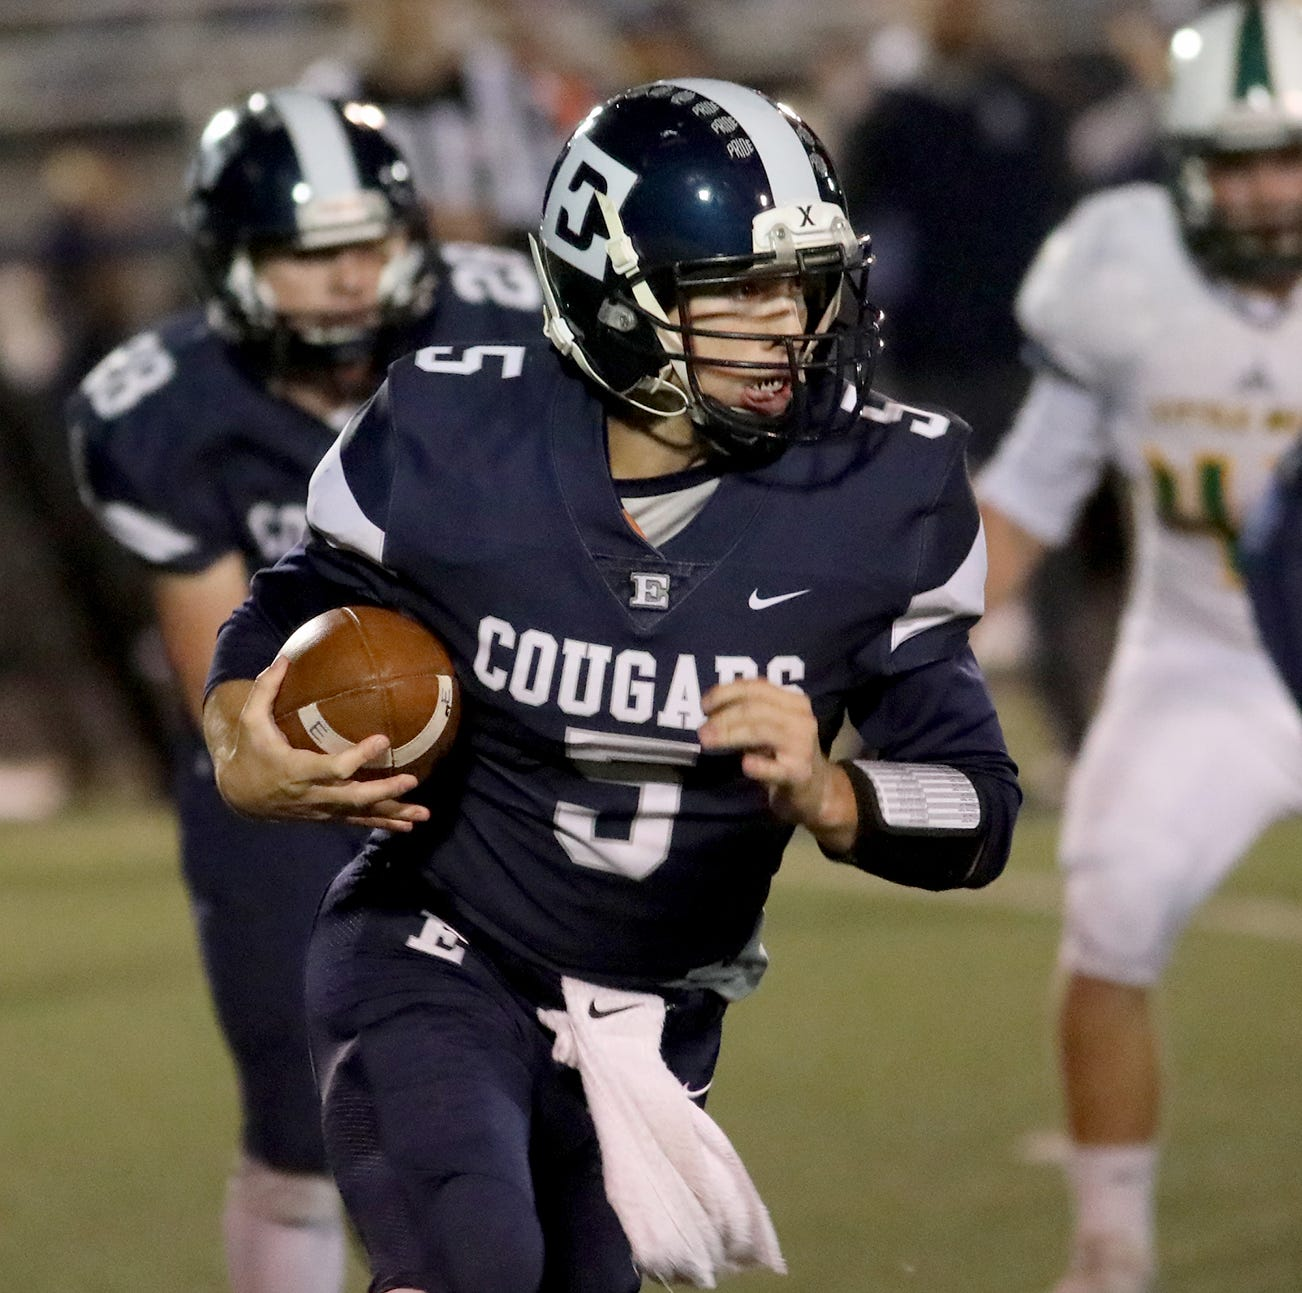 Edgewood quarterback Corbin Craft runs the ball During their football game against Little Miami, Friday, Oct. 19, 2018.